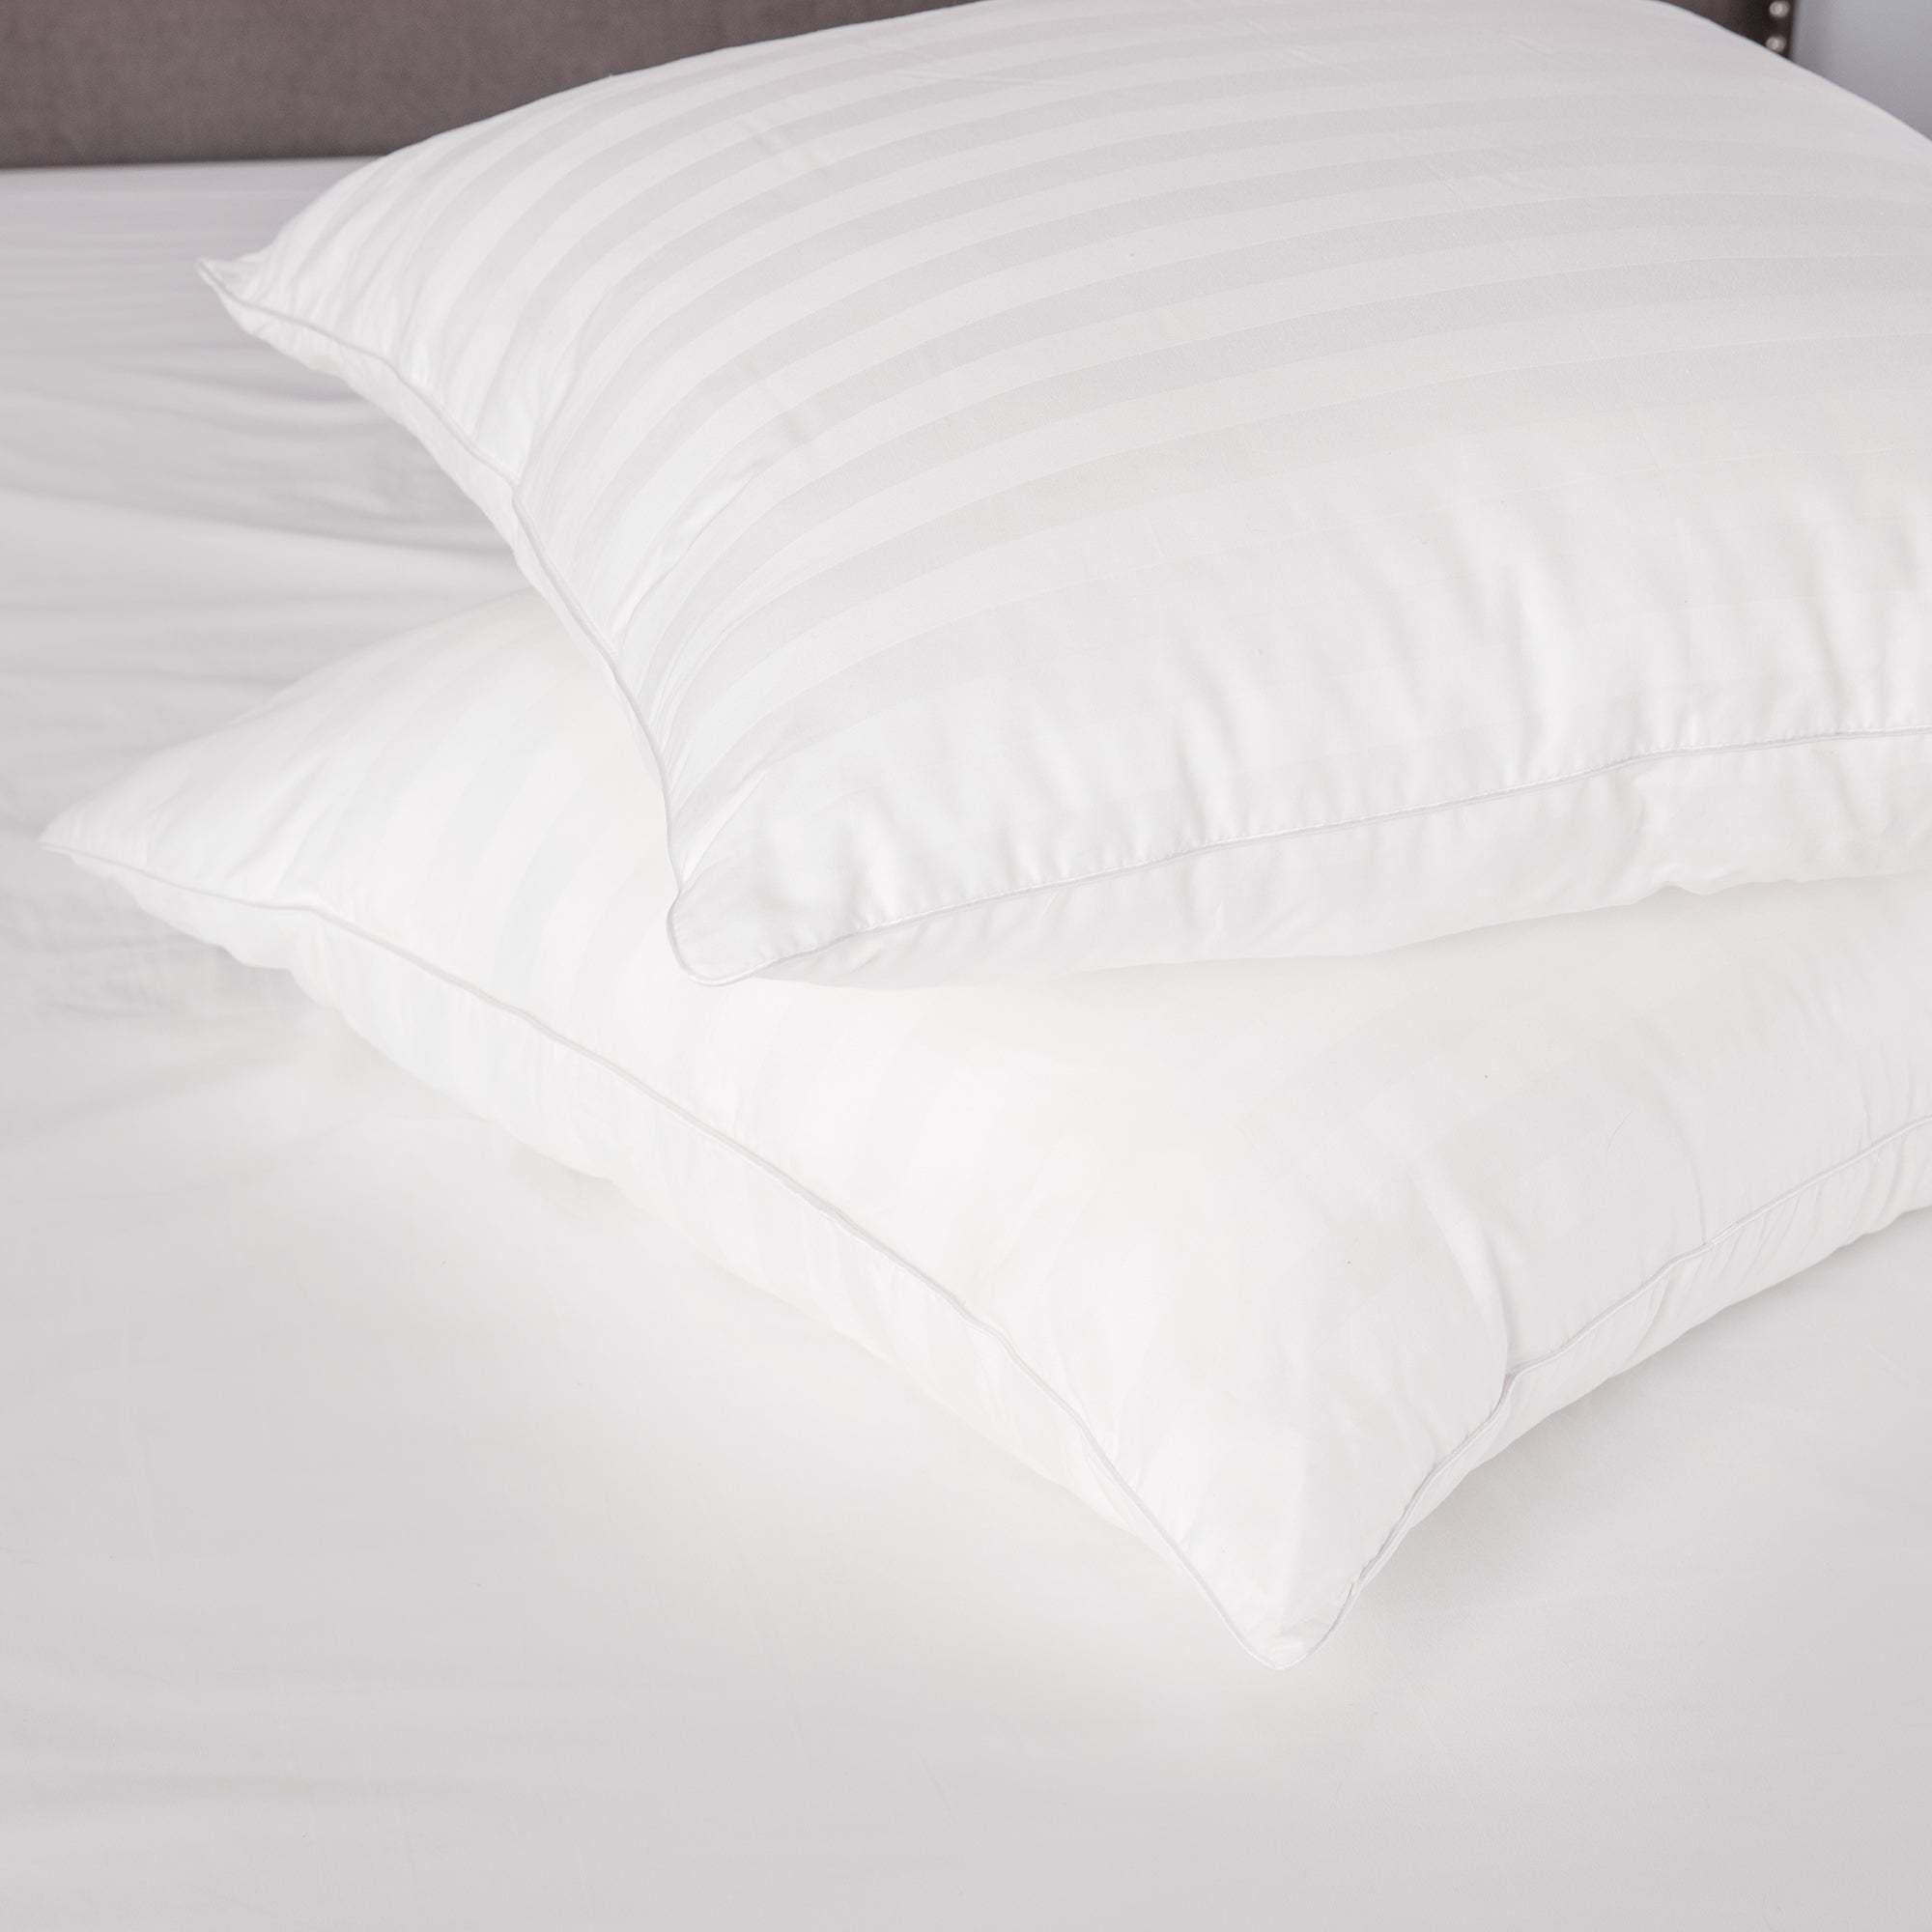 Luxury Cotton Decorator 28 X 28 Inch Euro Square Pillows With Sateen Stripe Set Of 2 On Sale Overstock 15872734